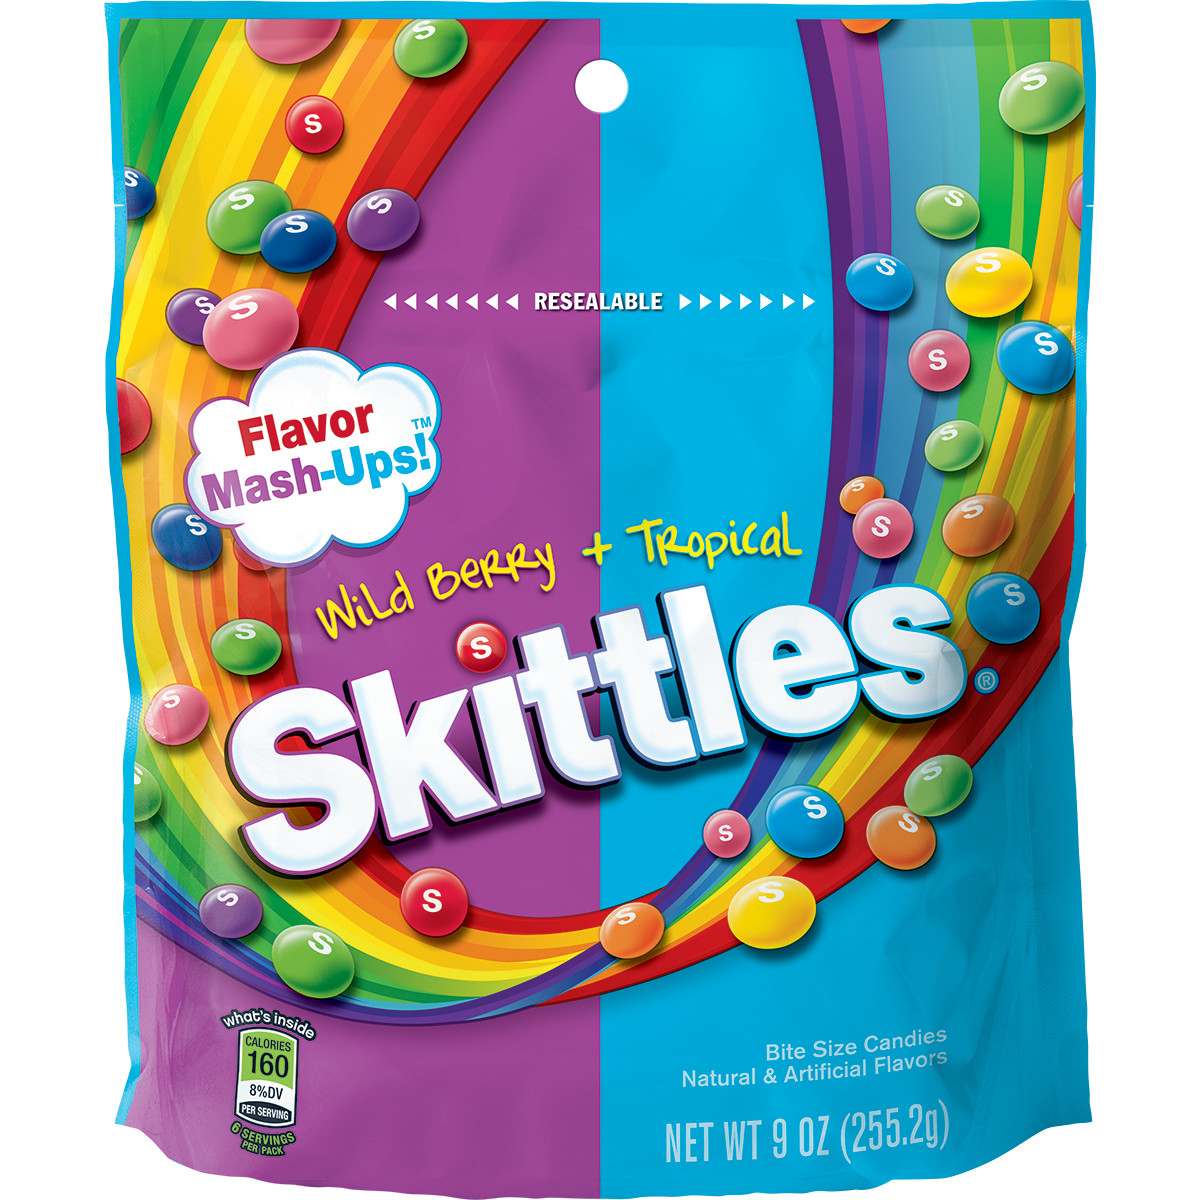 Skittles Flavor Mash-Ups! Wild Berry + Tropical Bite Size Candies 9oz